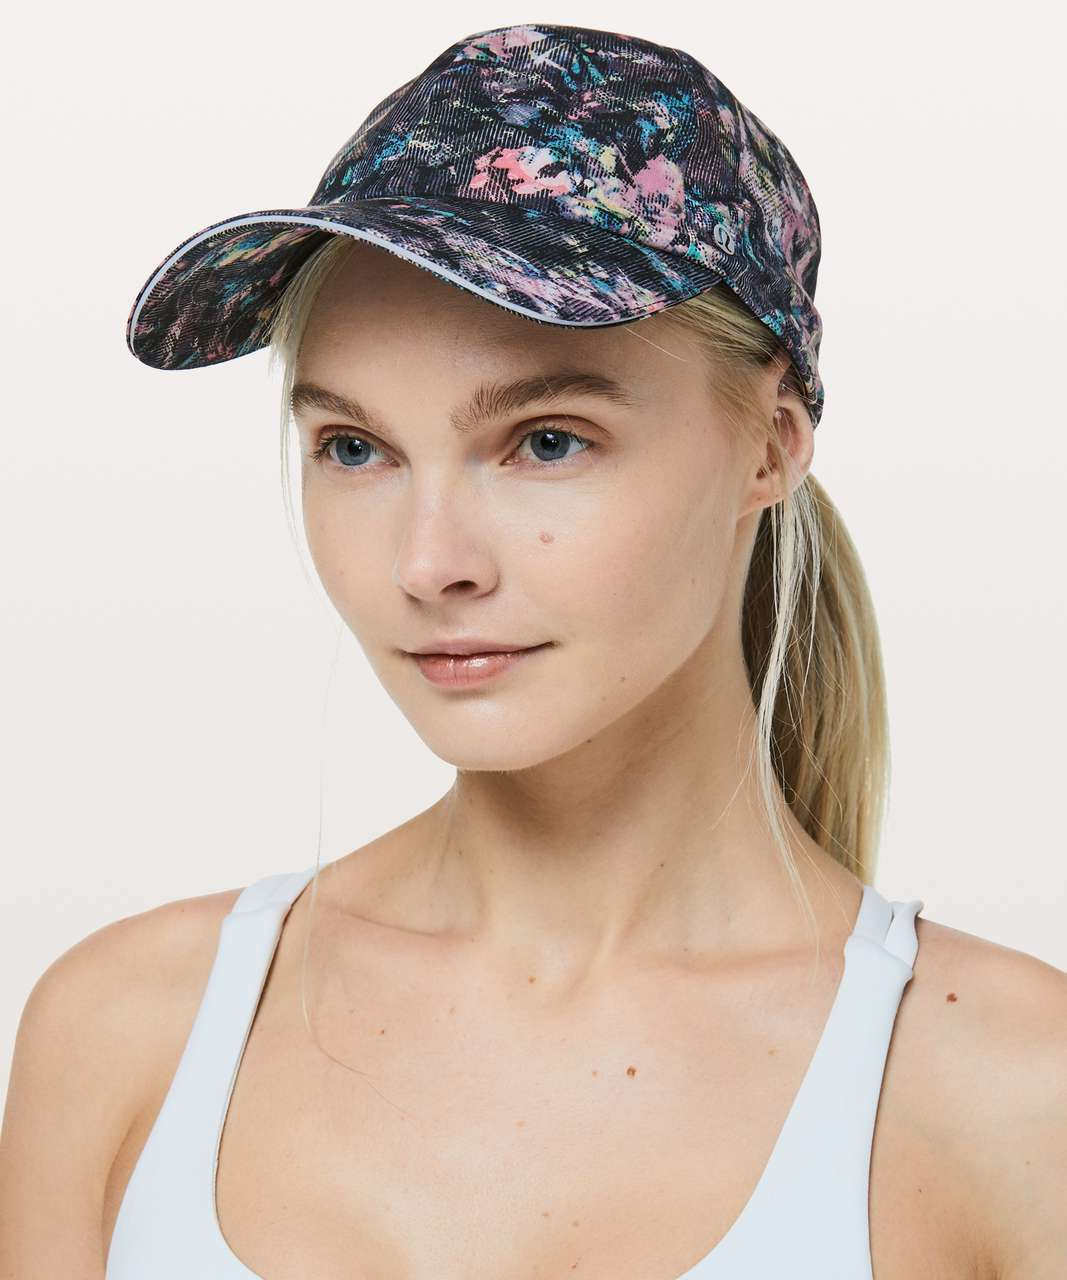 Lululemon Baller Hat Run - Dappled Daze Multi